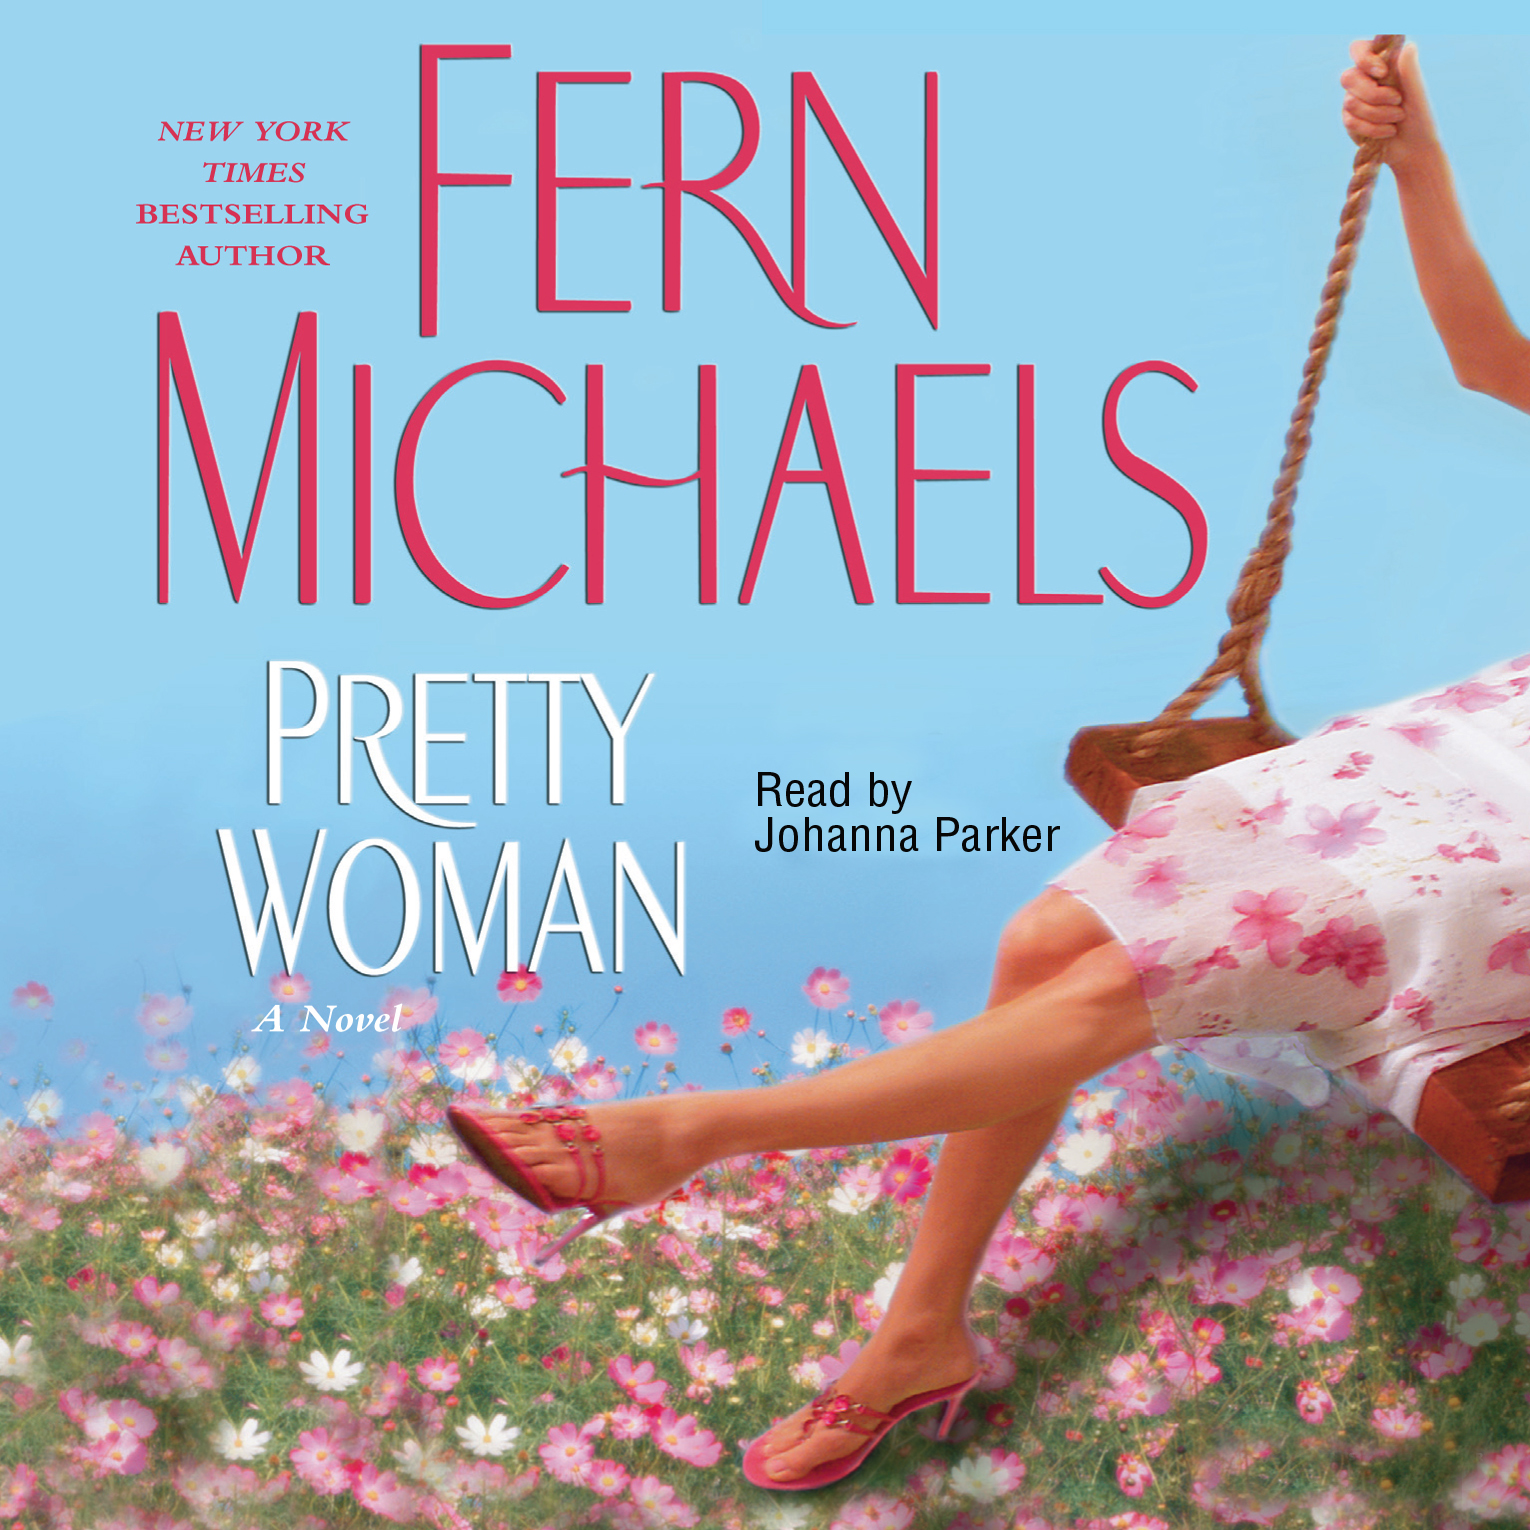 Pretty Book Cover Names ~ Pretty woman audiobook by fern michaels johanna parker